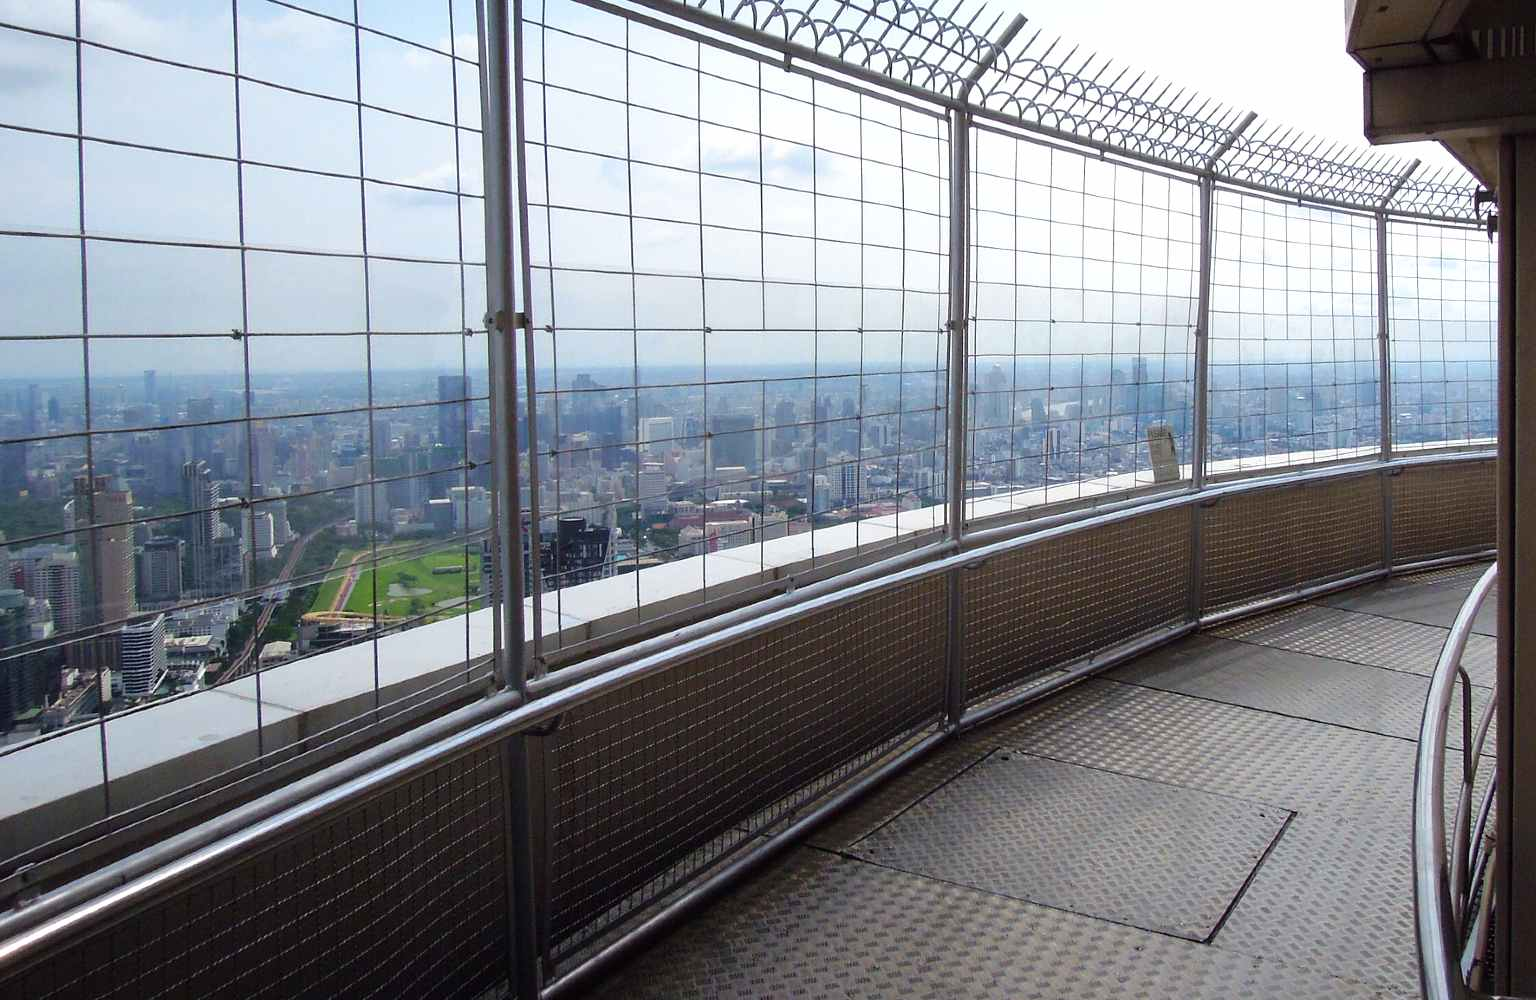 Revolving platform of the Baiyoke Sky with bars and amazing views over the skyline of Bangkok.